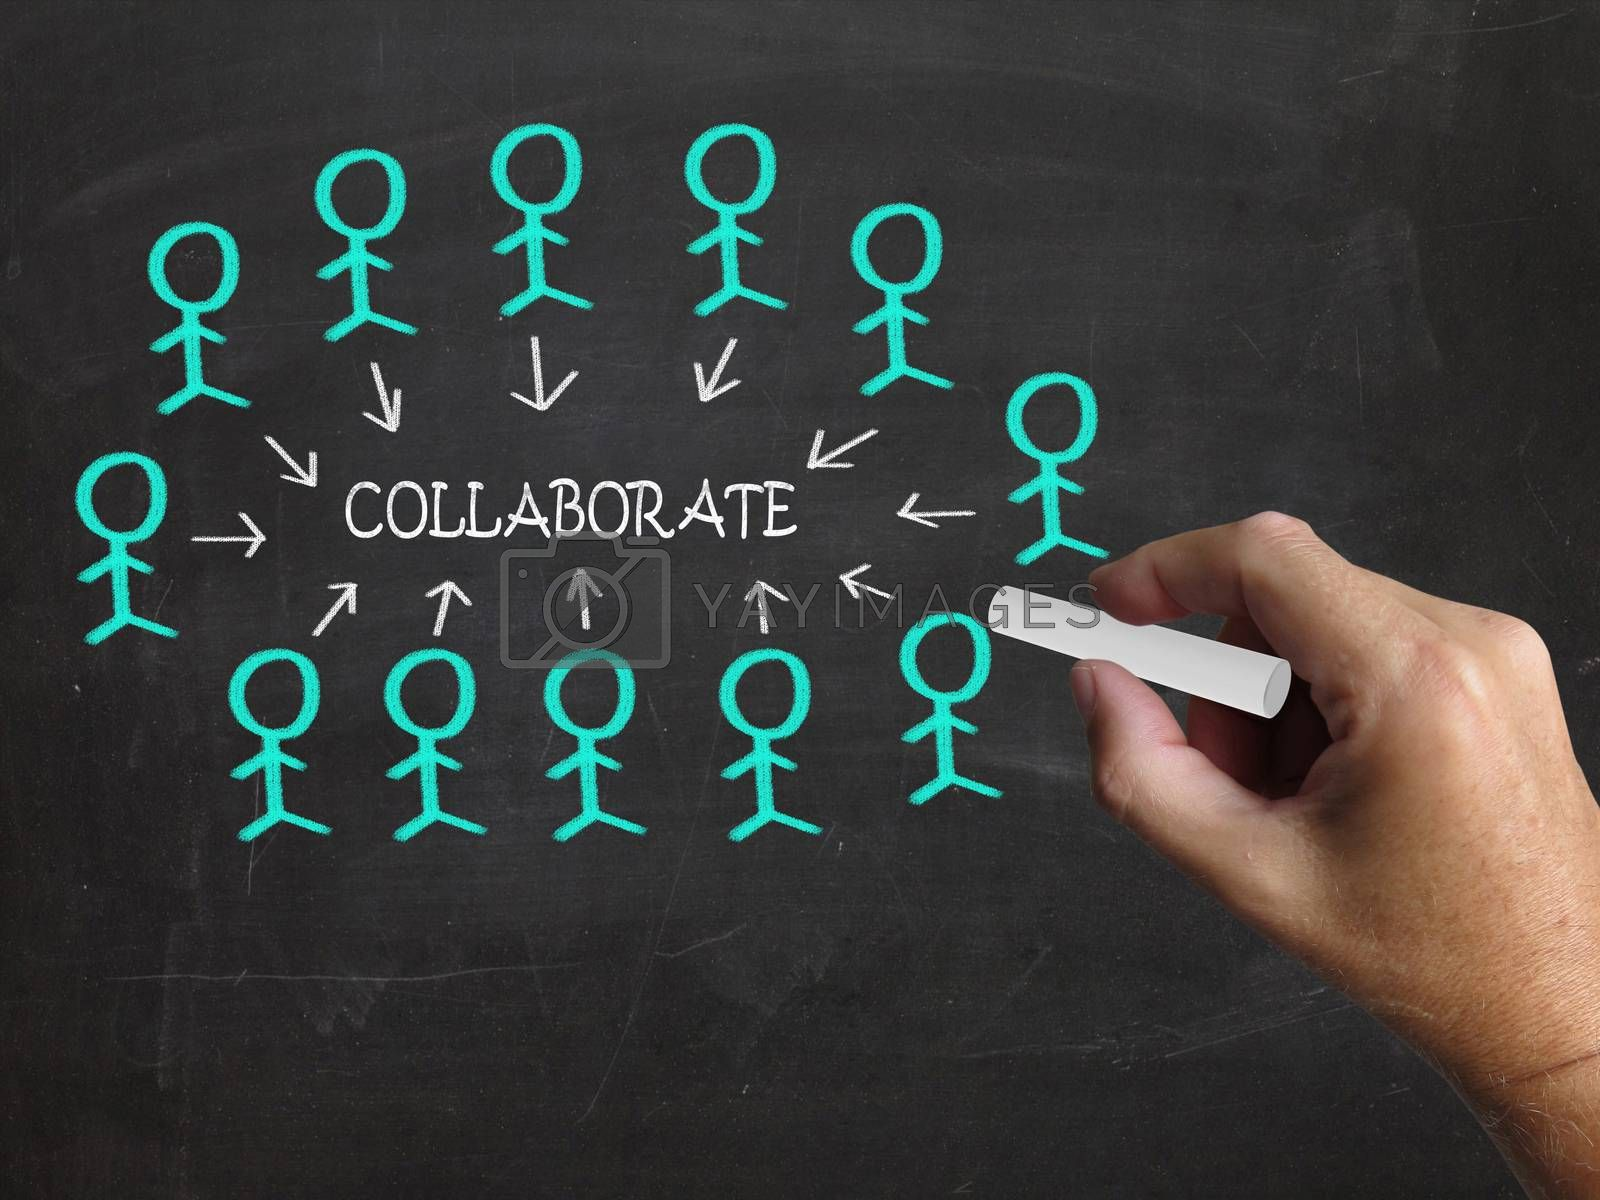 Collaborate On Blackboard Means Business Teamwork Or Collaborati by stuartmiles